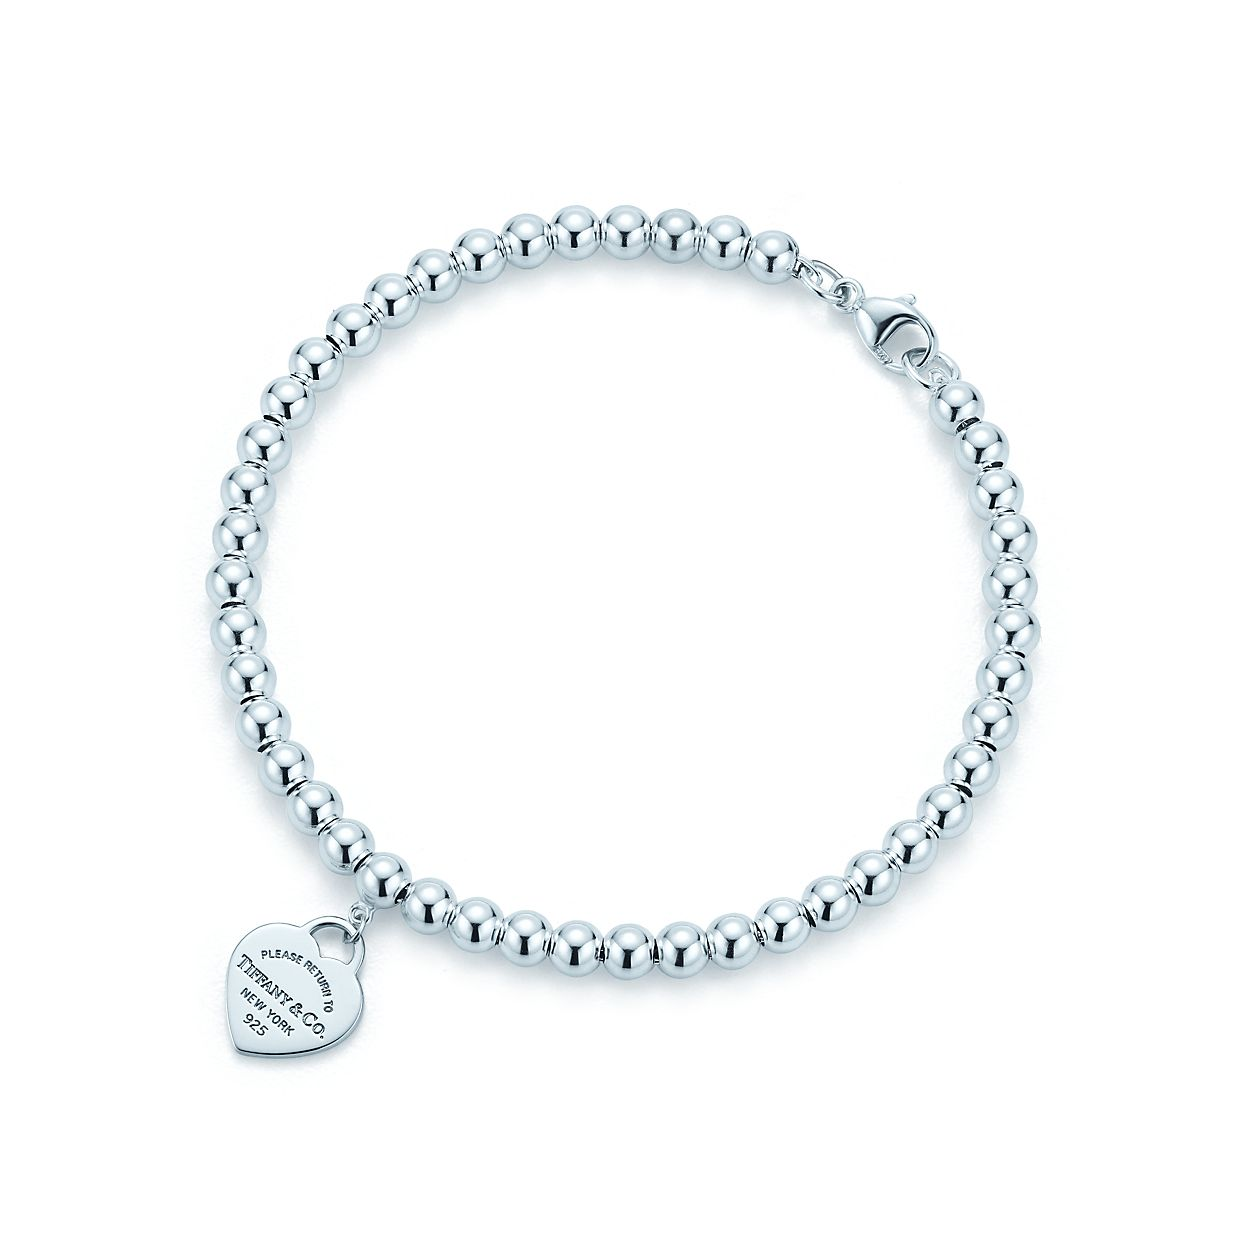 tiffany tag bracelet jewelry ed m silver fmt constrain return to hei bracelets wid charm id heart sterling fit co